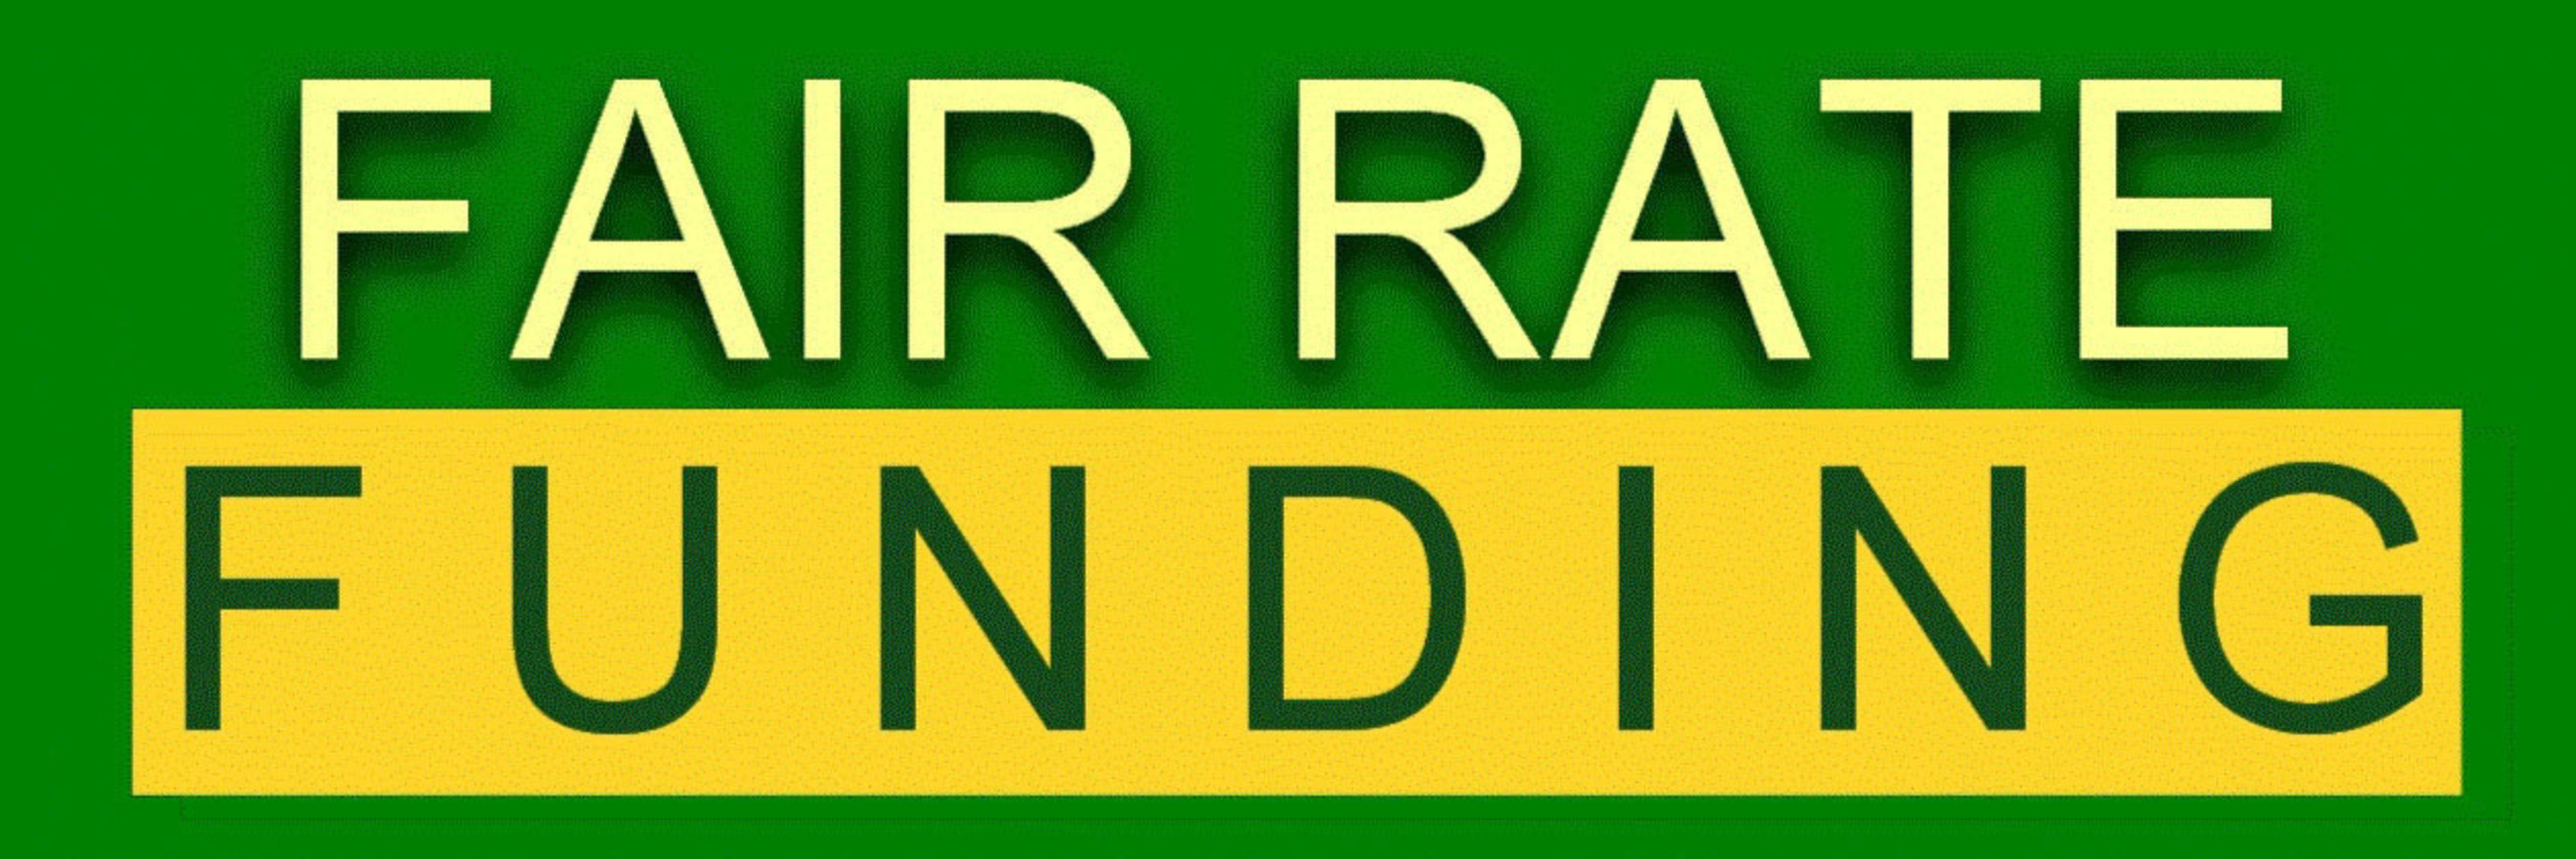 Fair Rate Funding logo